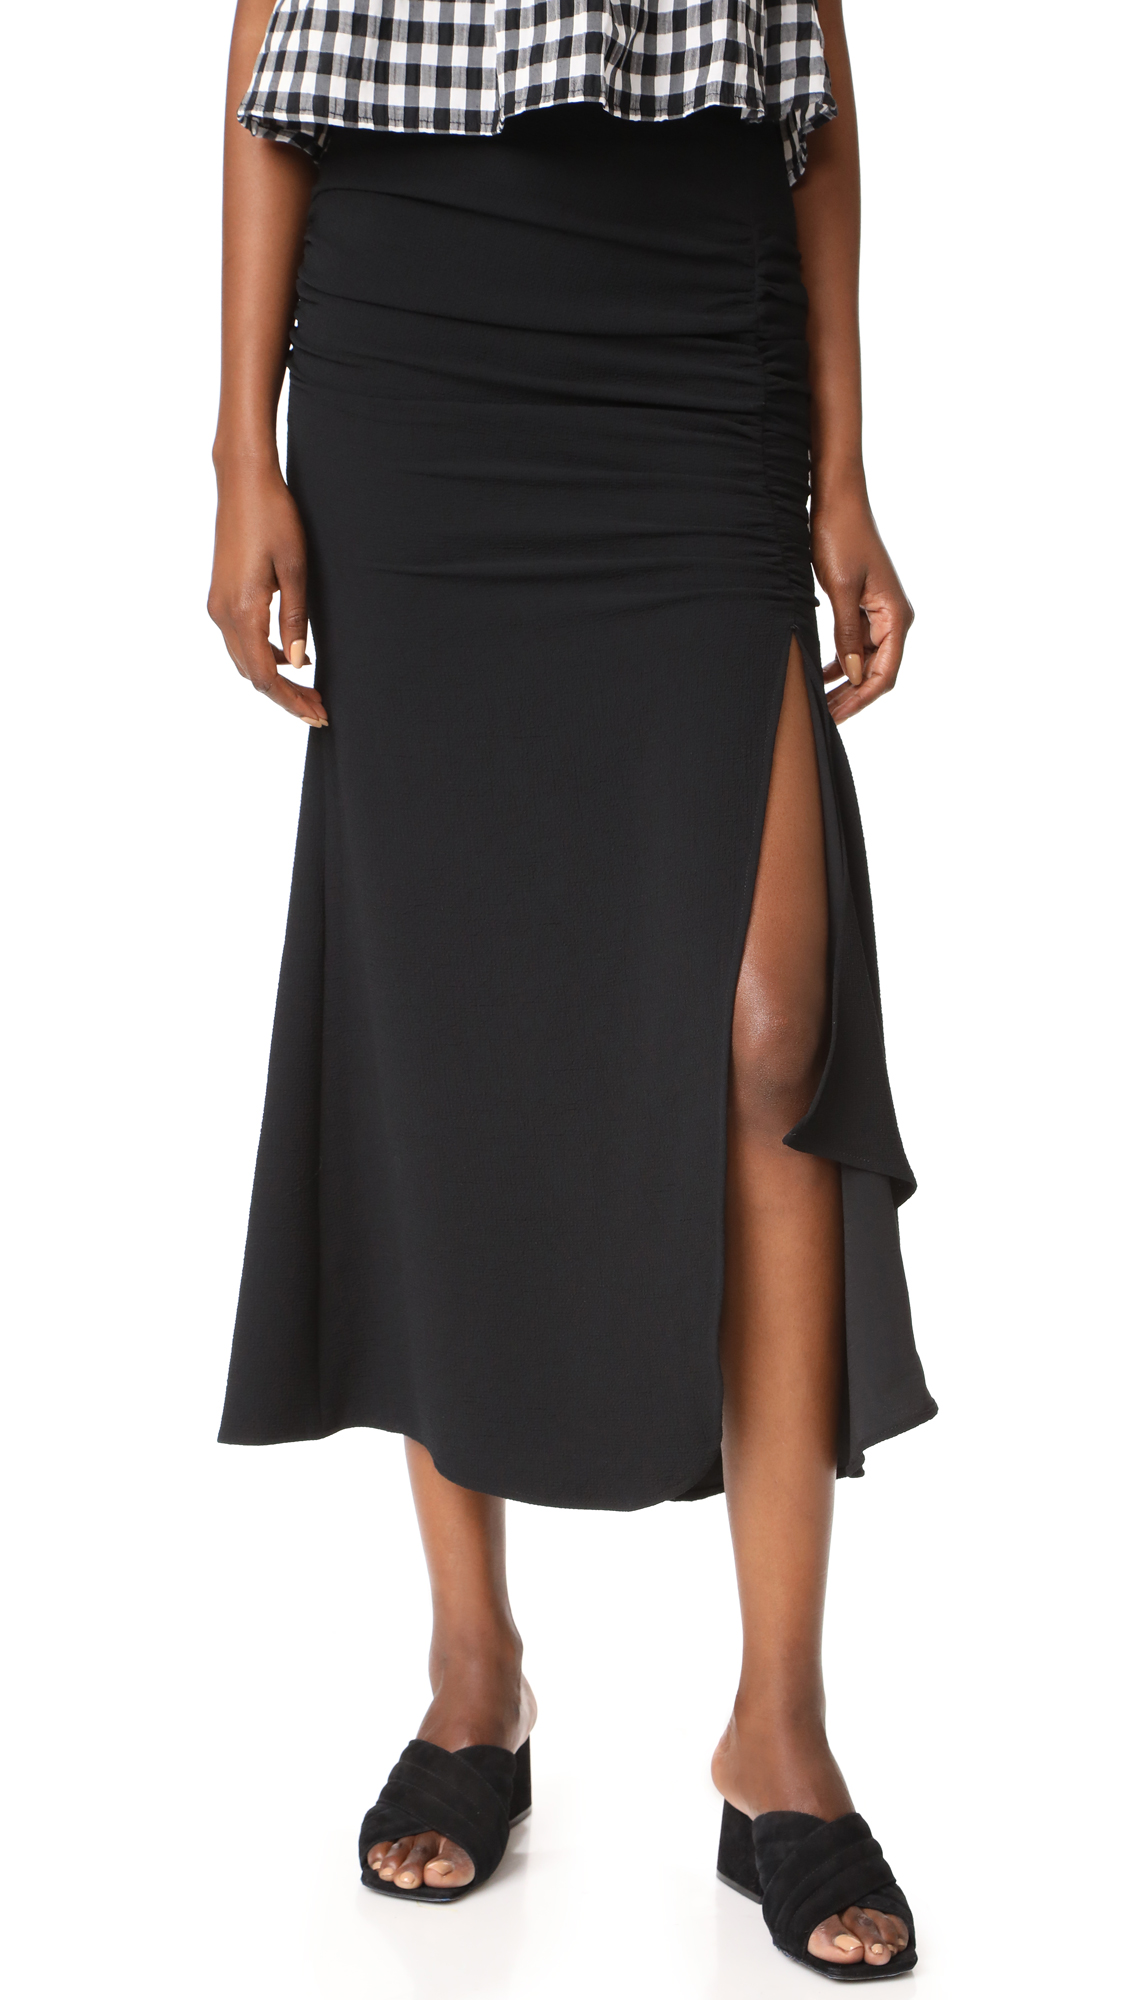 Rachel Comey Mutinous Skirt - Black